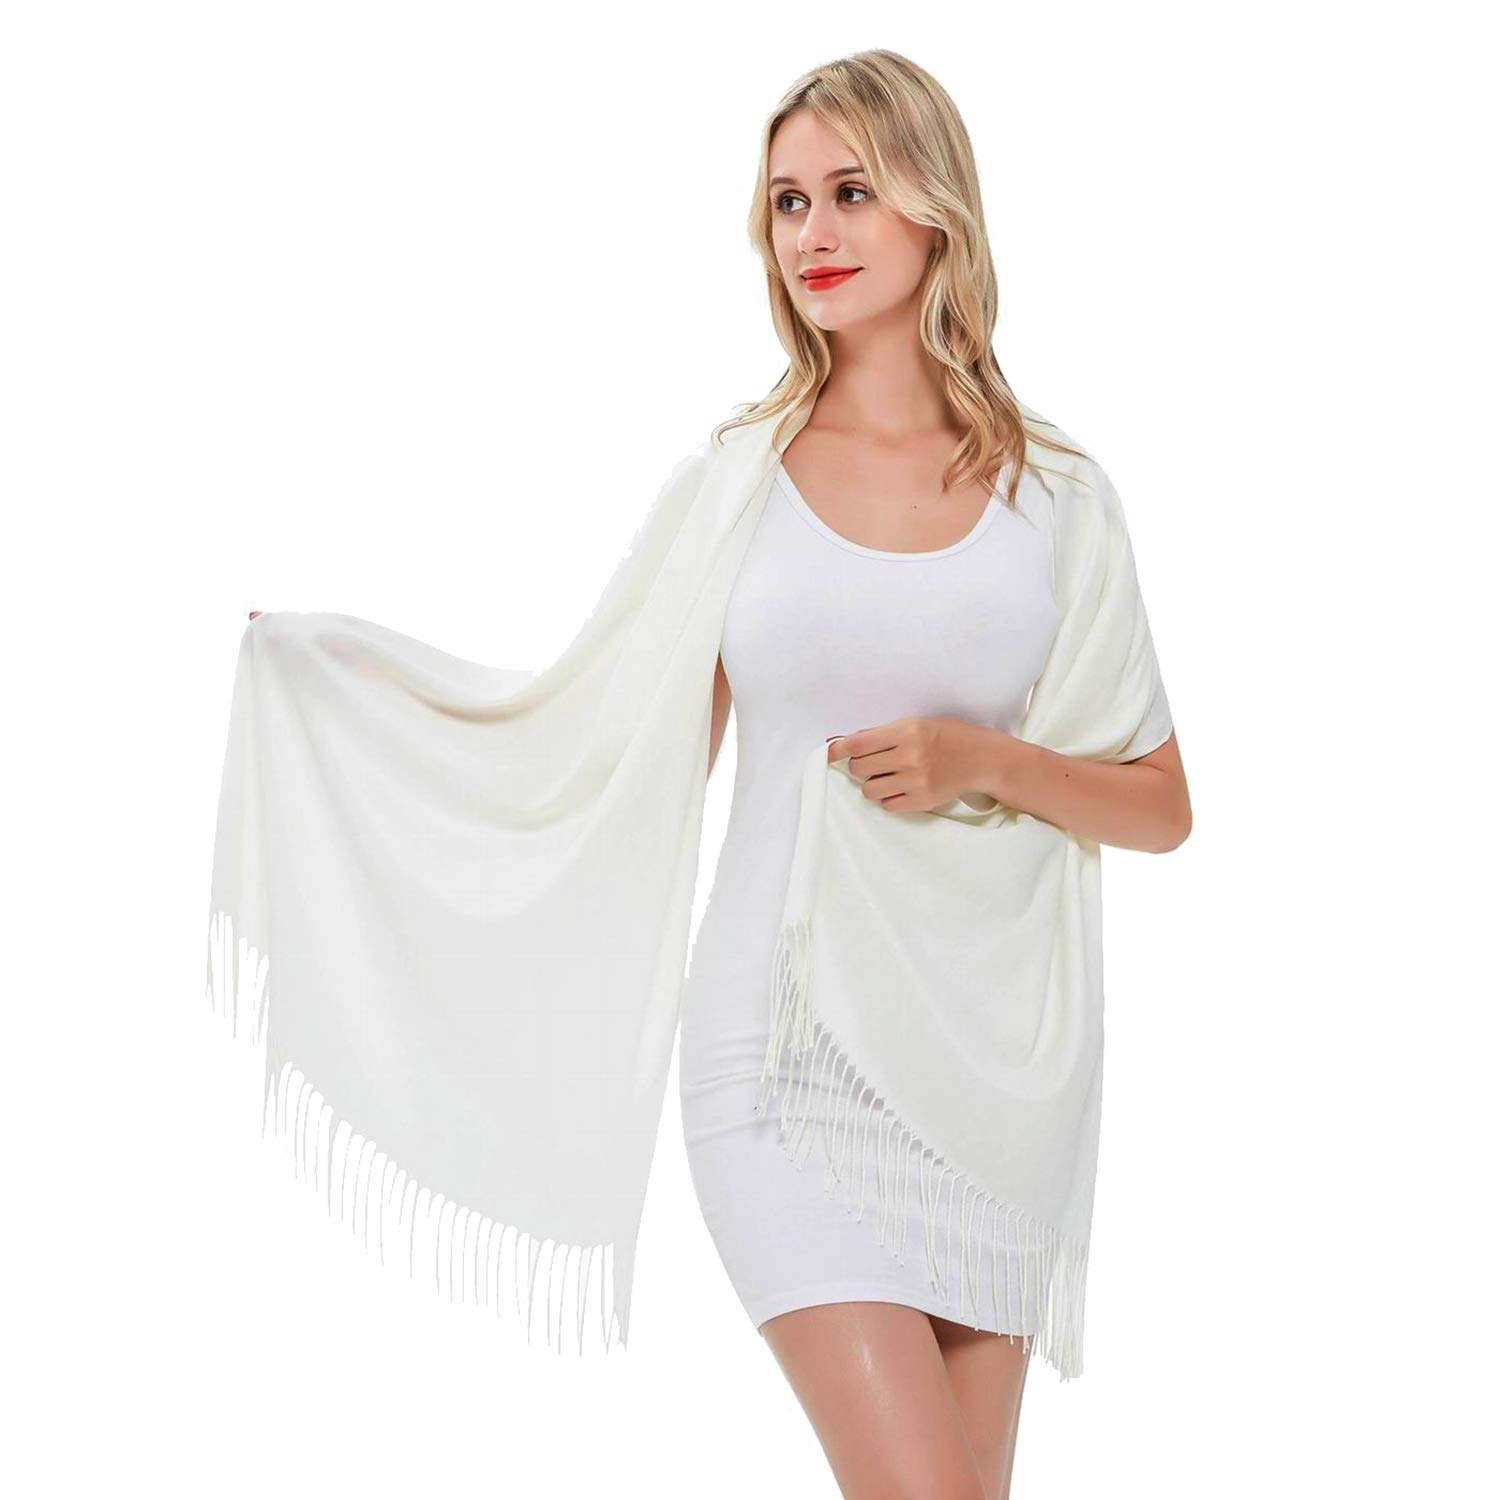 Pashmina Scarf for Women, Vimate Cashmere Feel Plain Colors Pashmina Shawls and Wraps (Off White (B style))